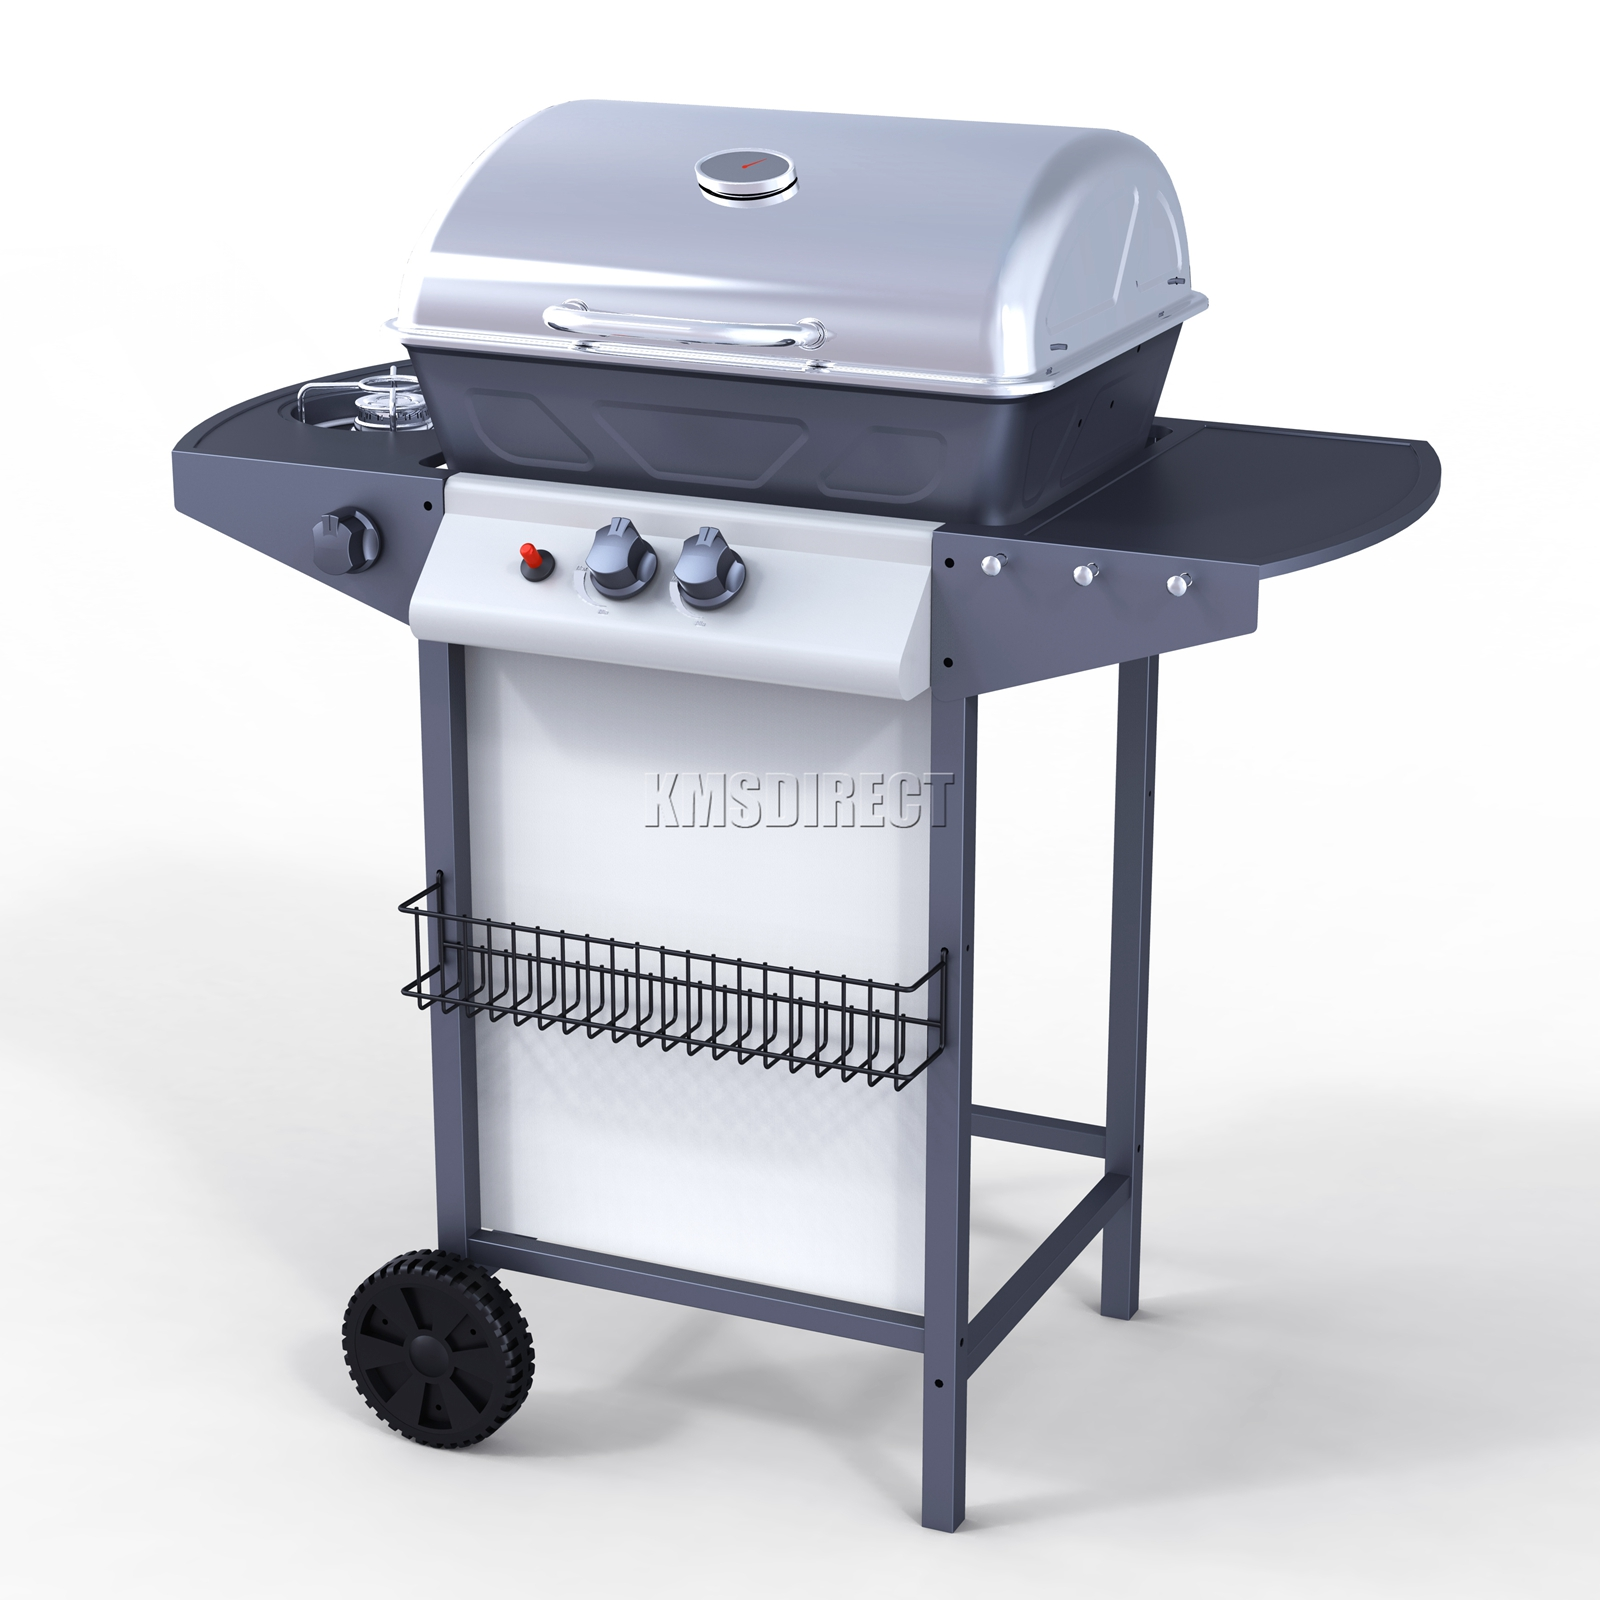 new 2 burner bbq gas grill stainless steel barbecue 1 side outdoor